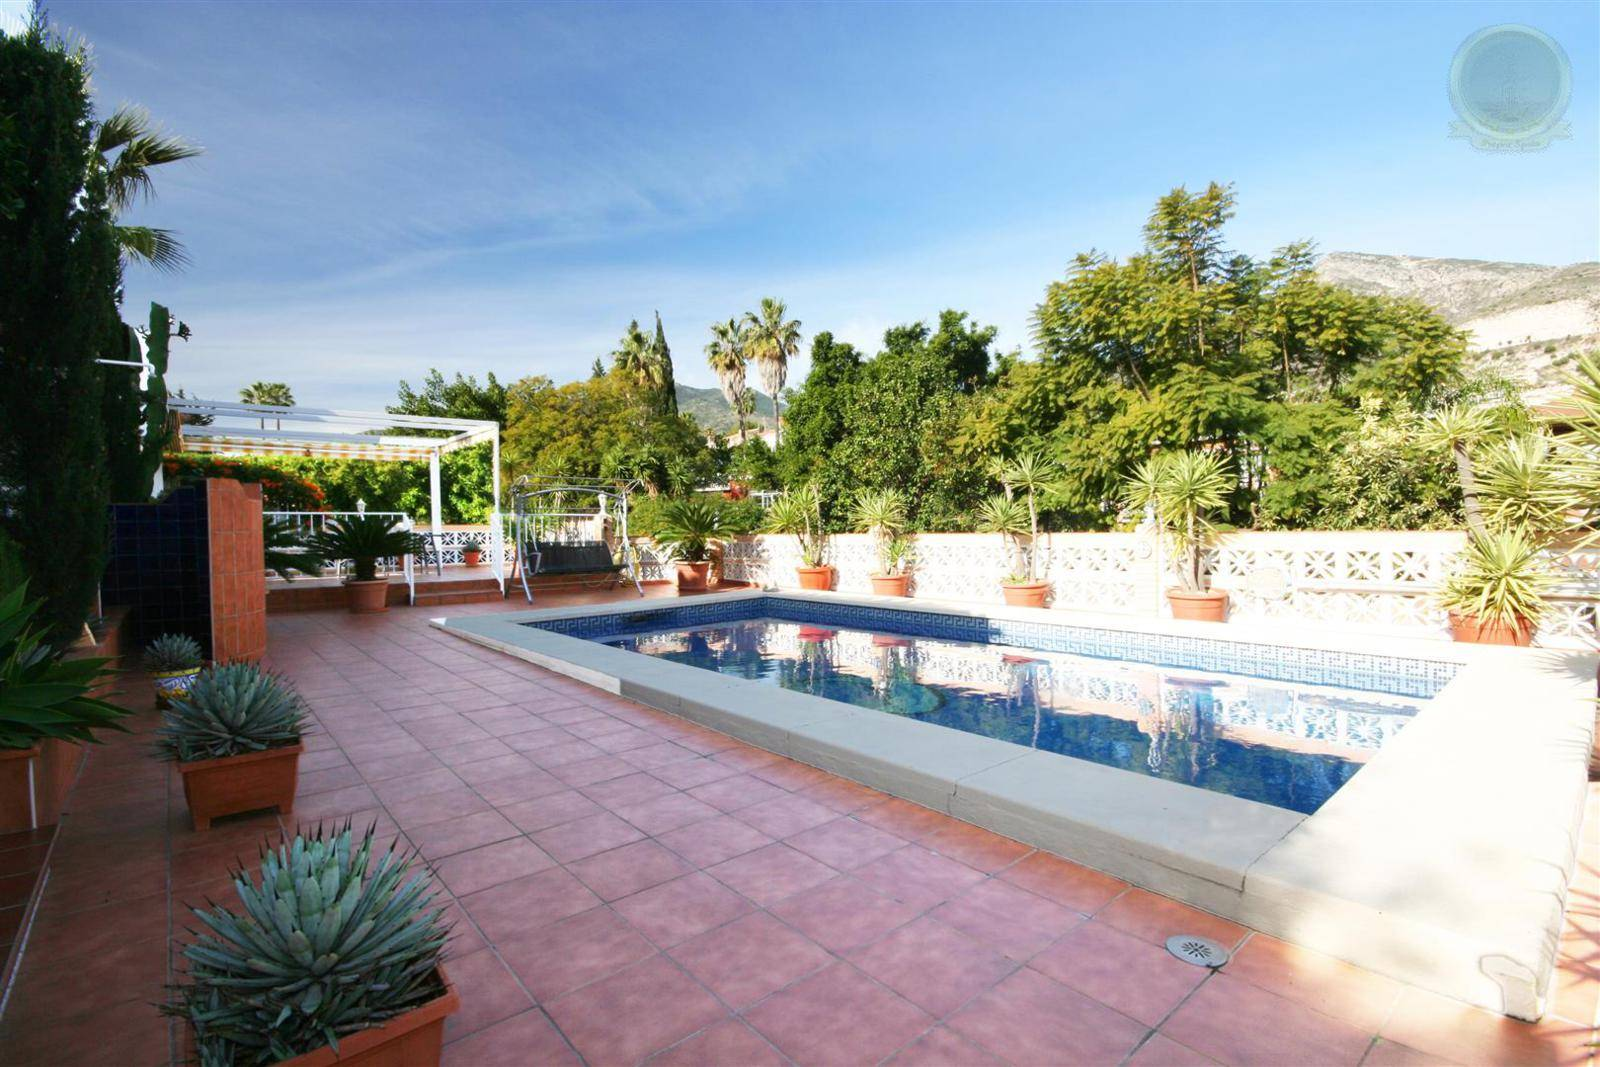 villa for sale in Arroyo de la Miel, Benalmádena 3